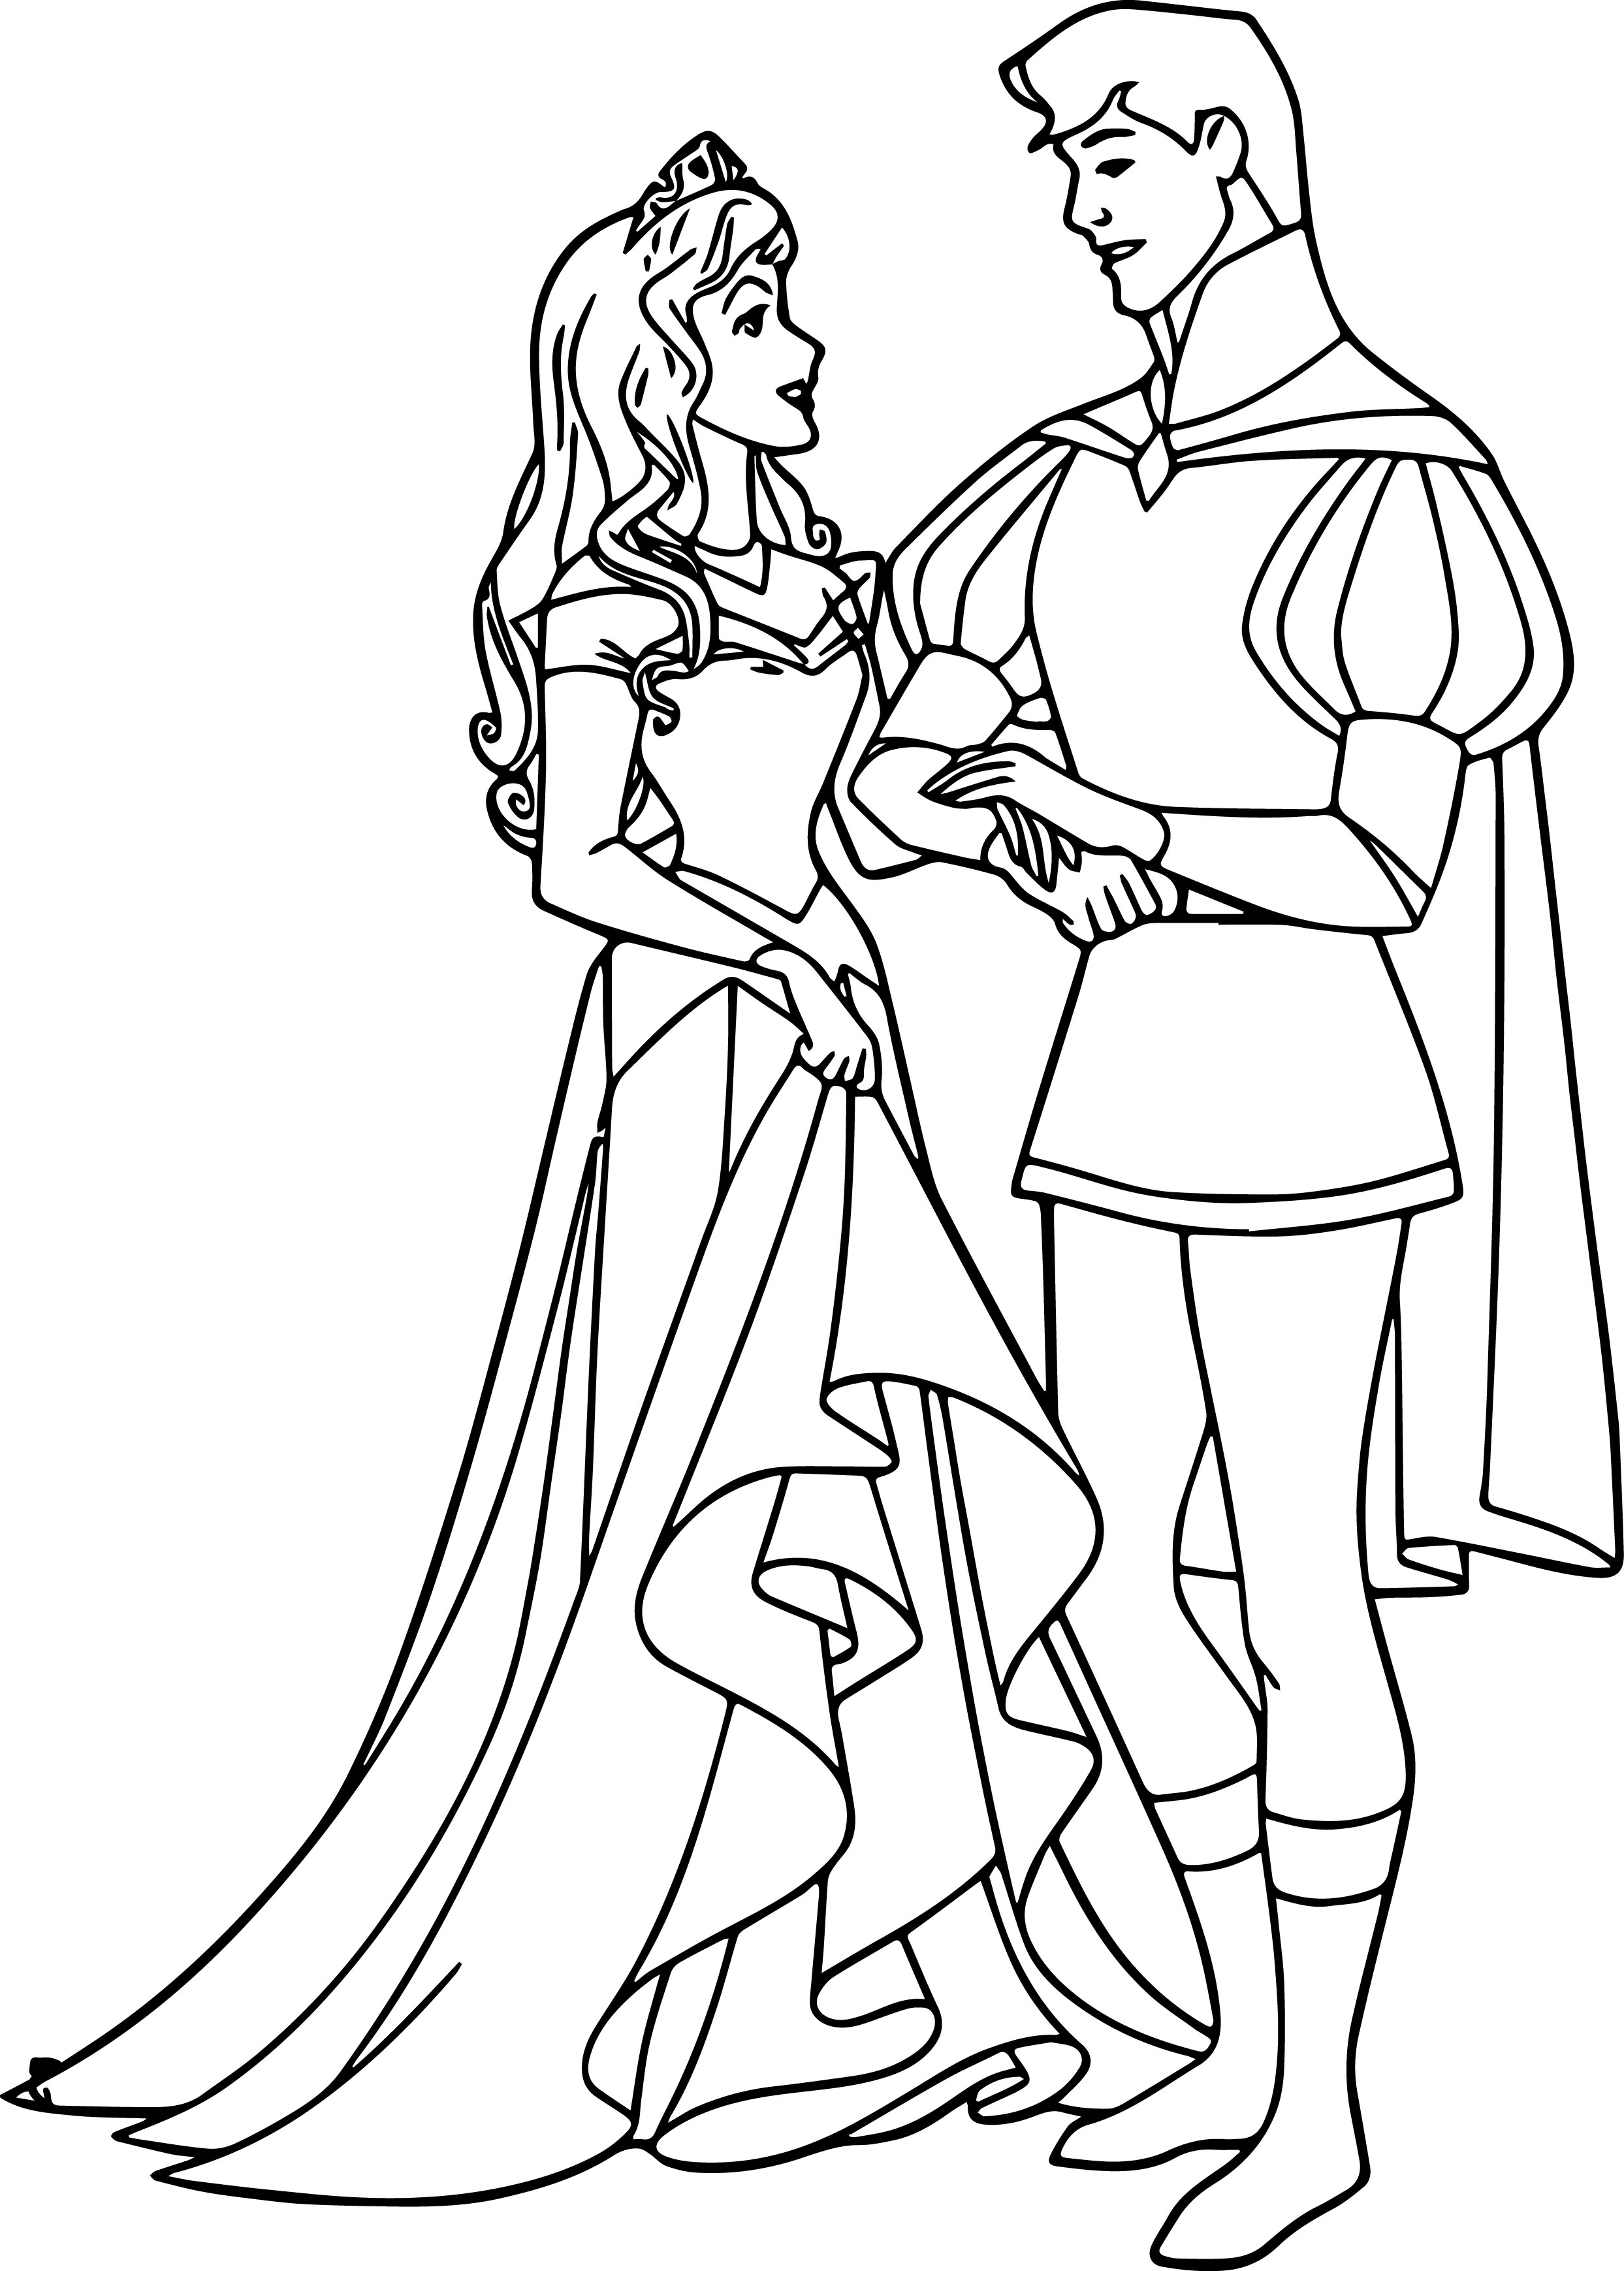 Disney Aurora And Phillip Coloring Pages 32